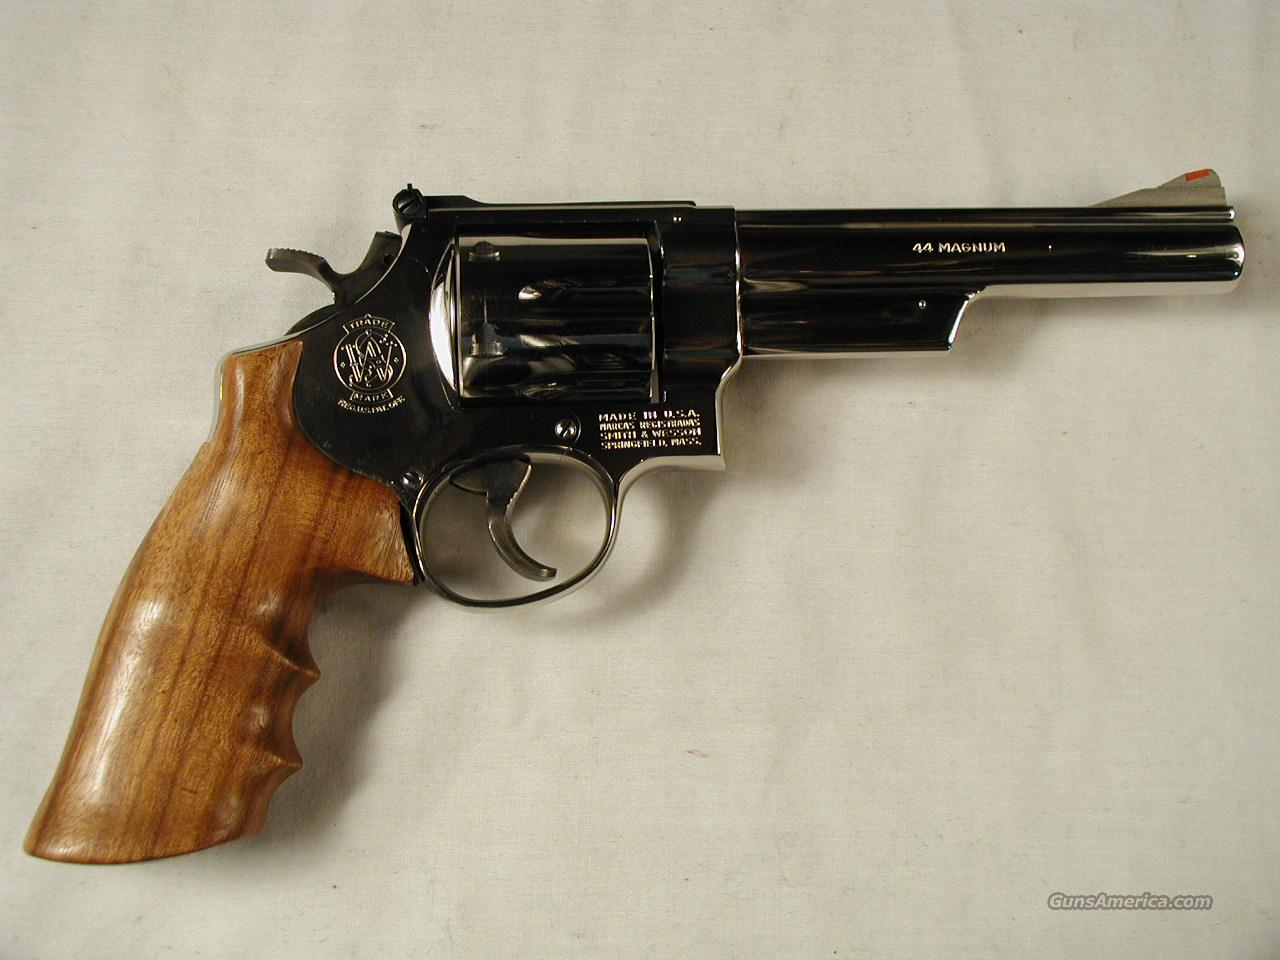 NICKLE S&W 29  Guns > Pistols > Smith & Wesson Revolvers > Full Frame Revolver